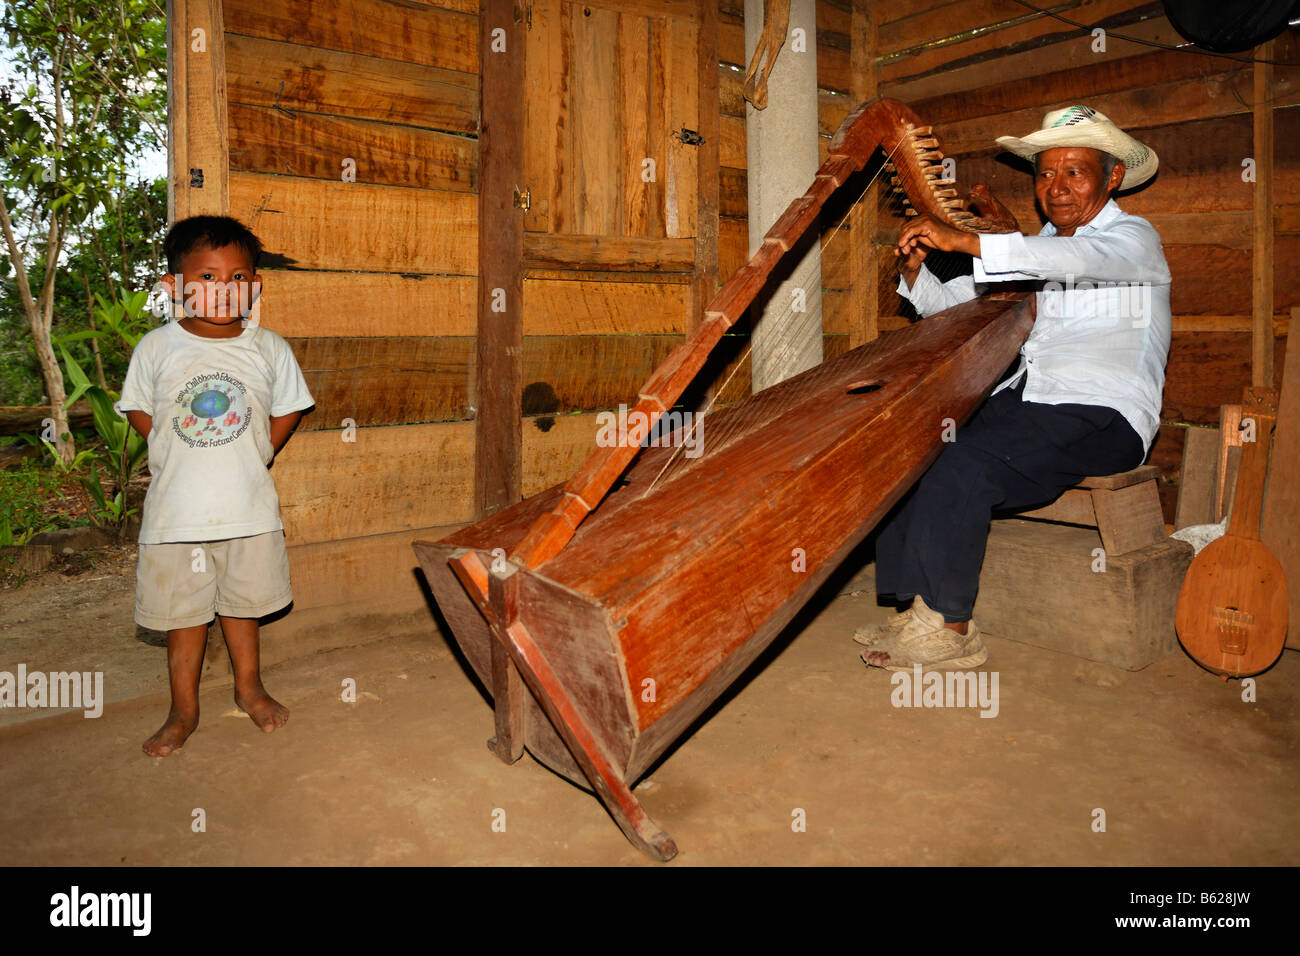 Native musician playing a self-made instrument, harp, small boy, wooden hut, Punta Gorda, Belize, Central America - Stock Image